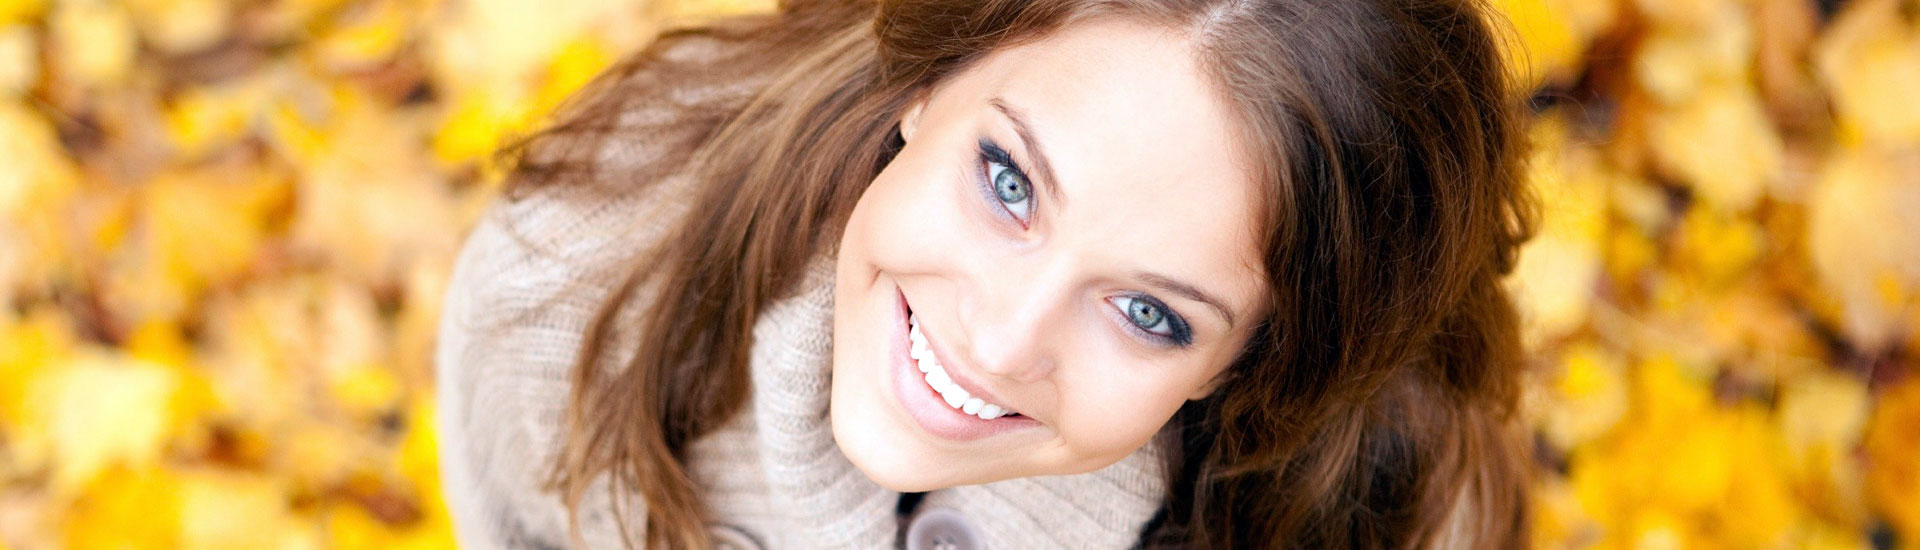 Cosmetic Dentistry in SW Calgary, AB